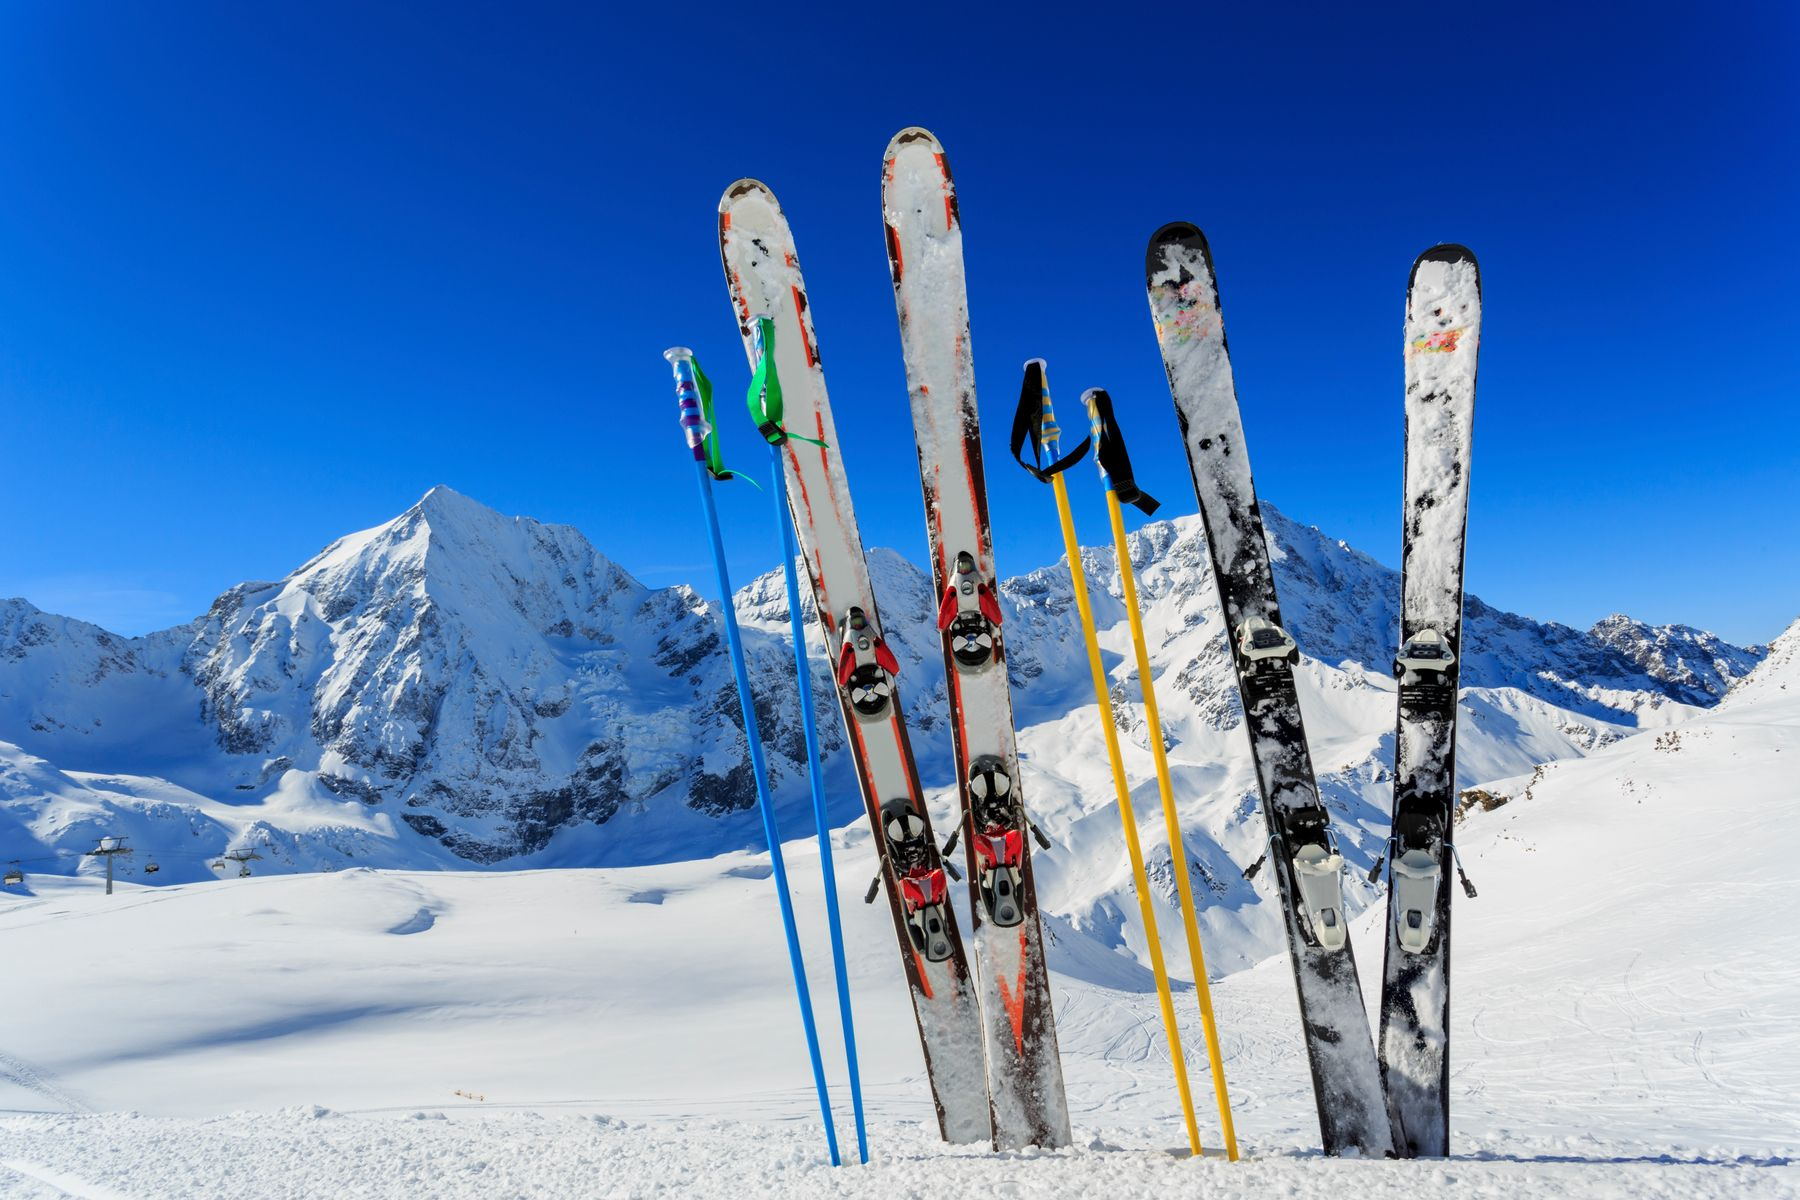 Two sets of skis and ski poles (sticks) are propped up in the snow, with mountains in the background